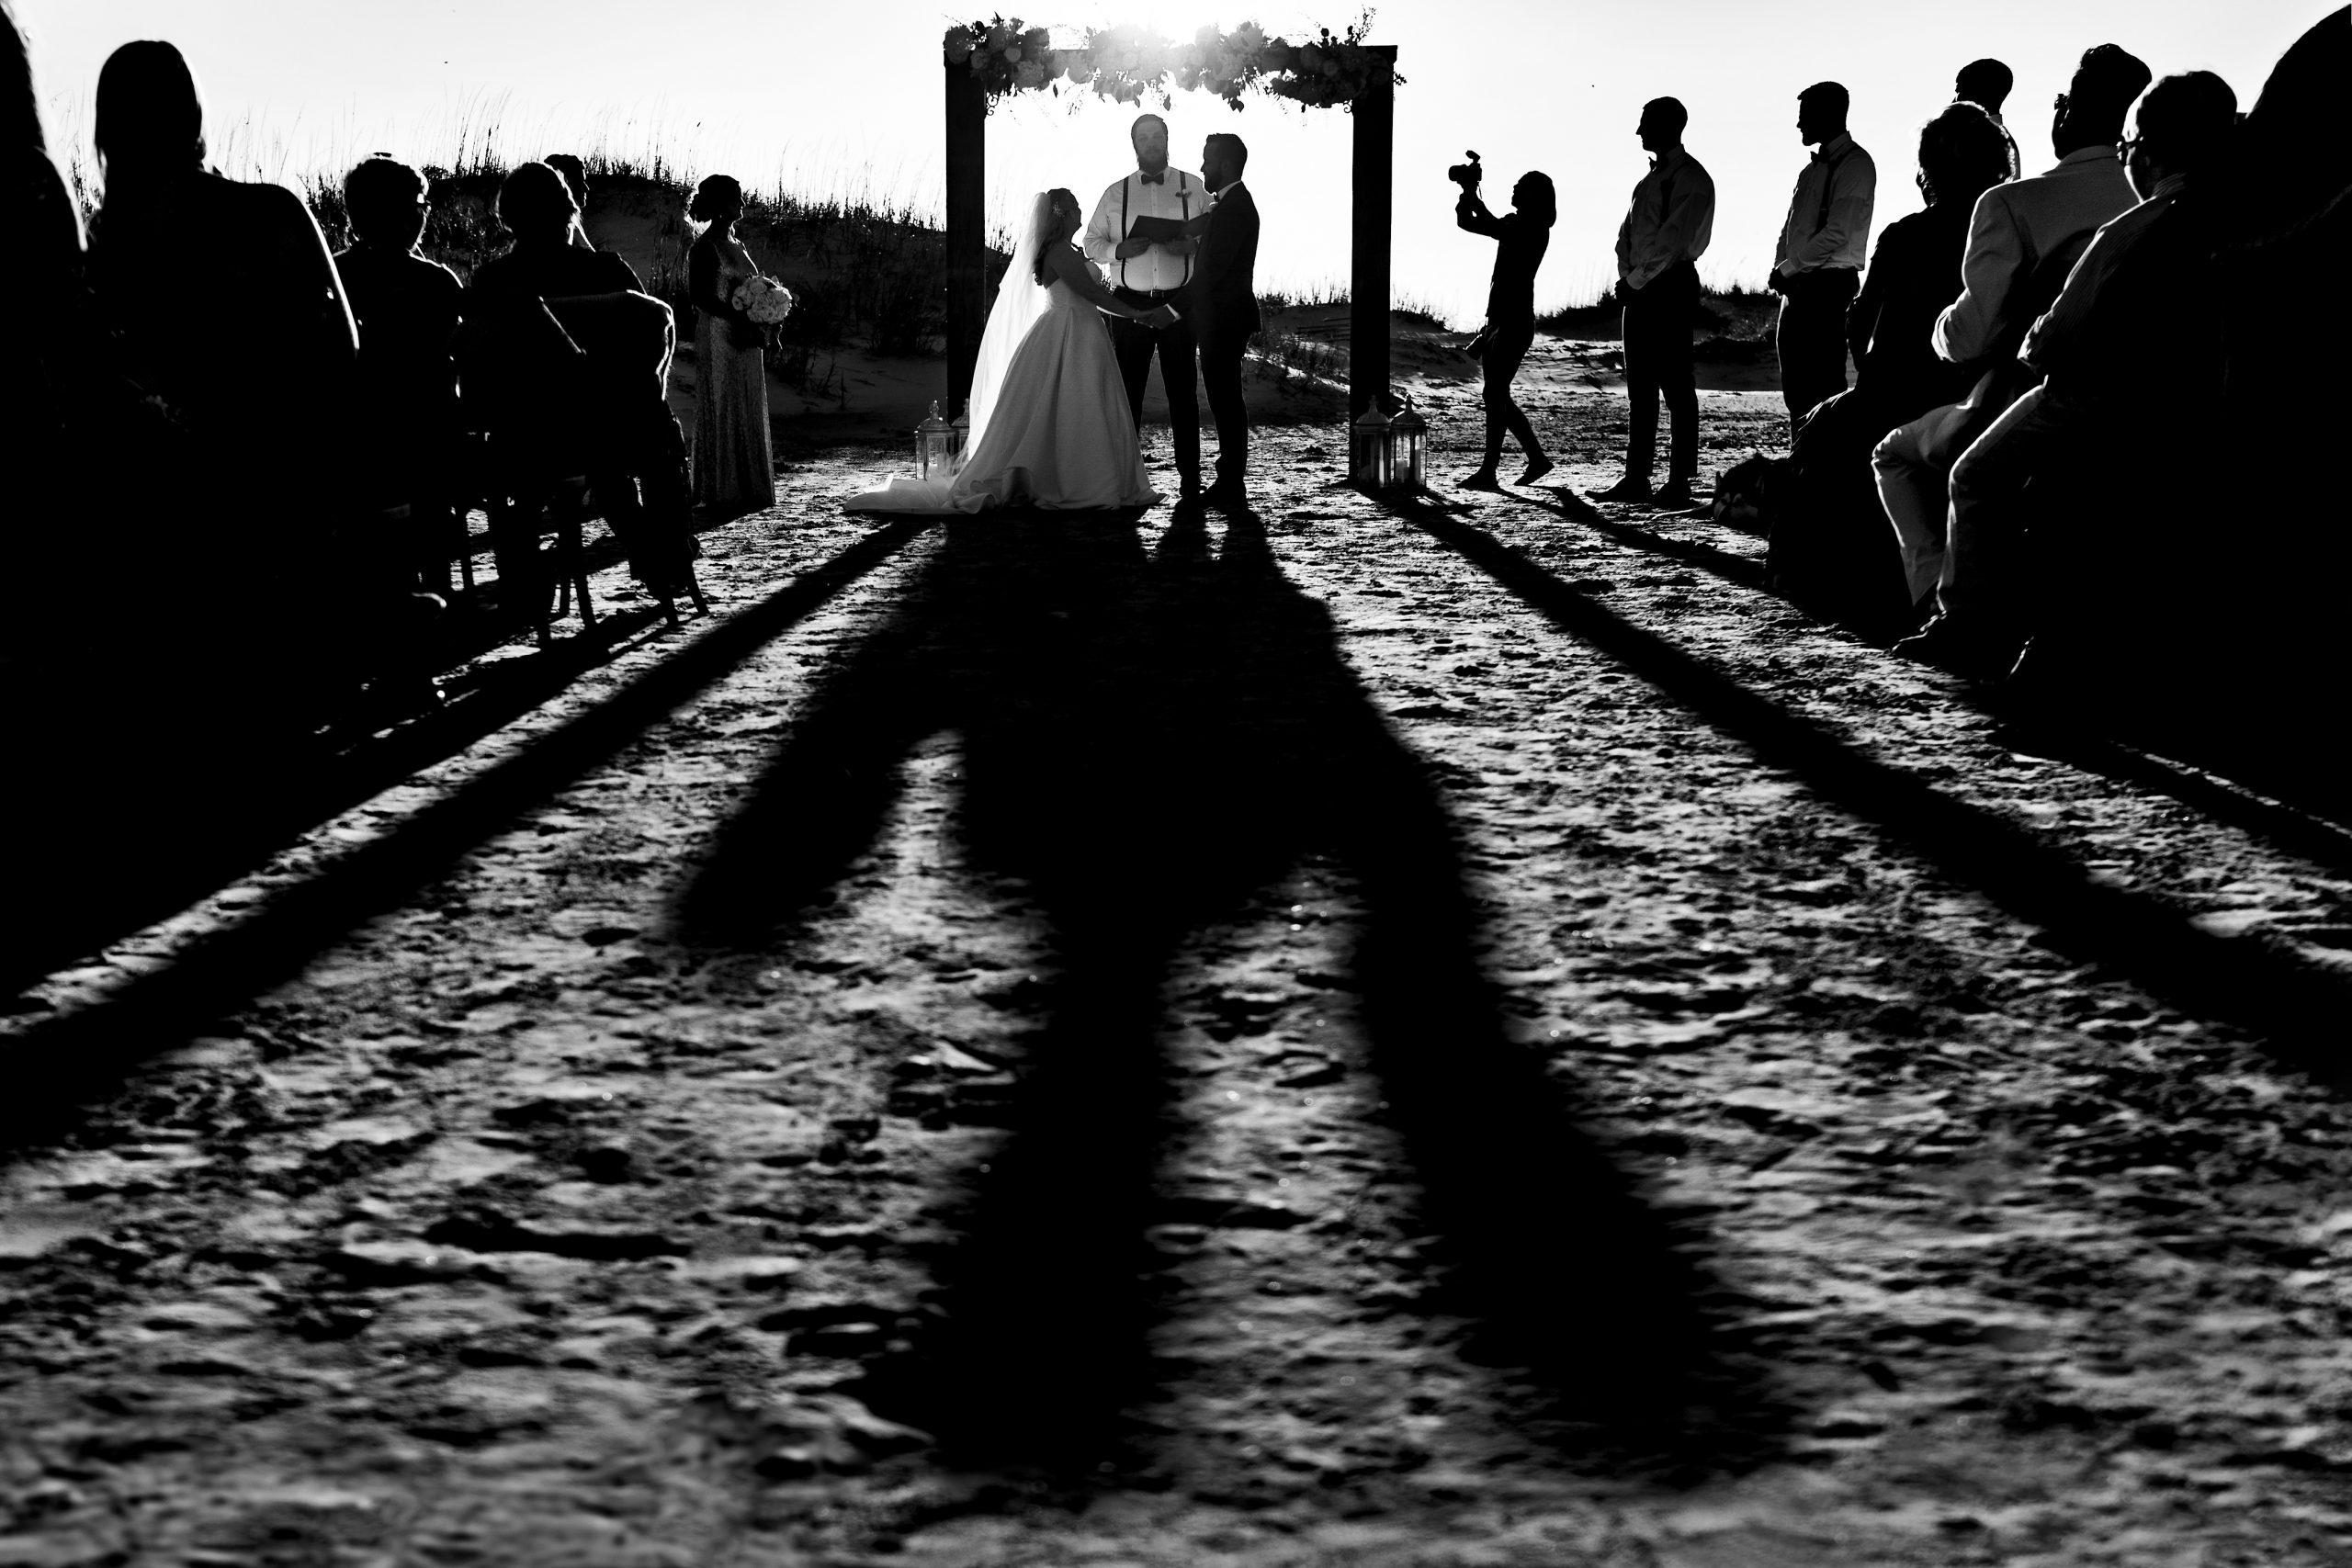 A beach wedding ceremony surrounded by friends and family.